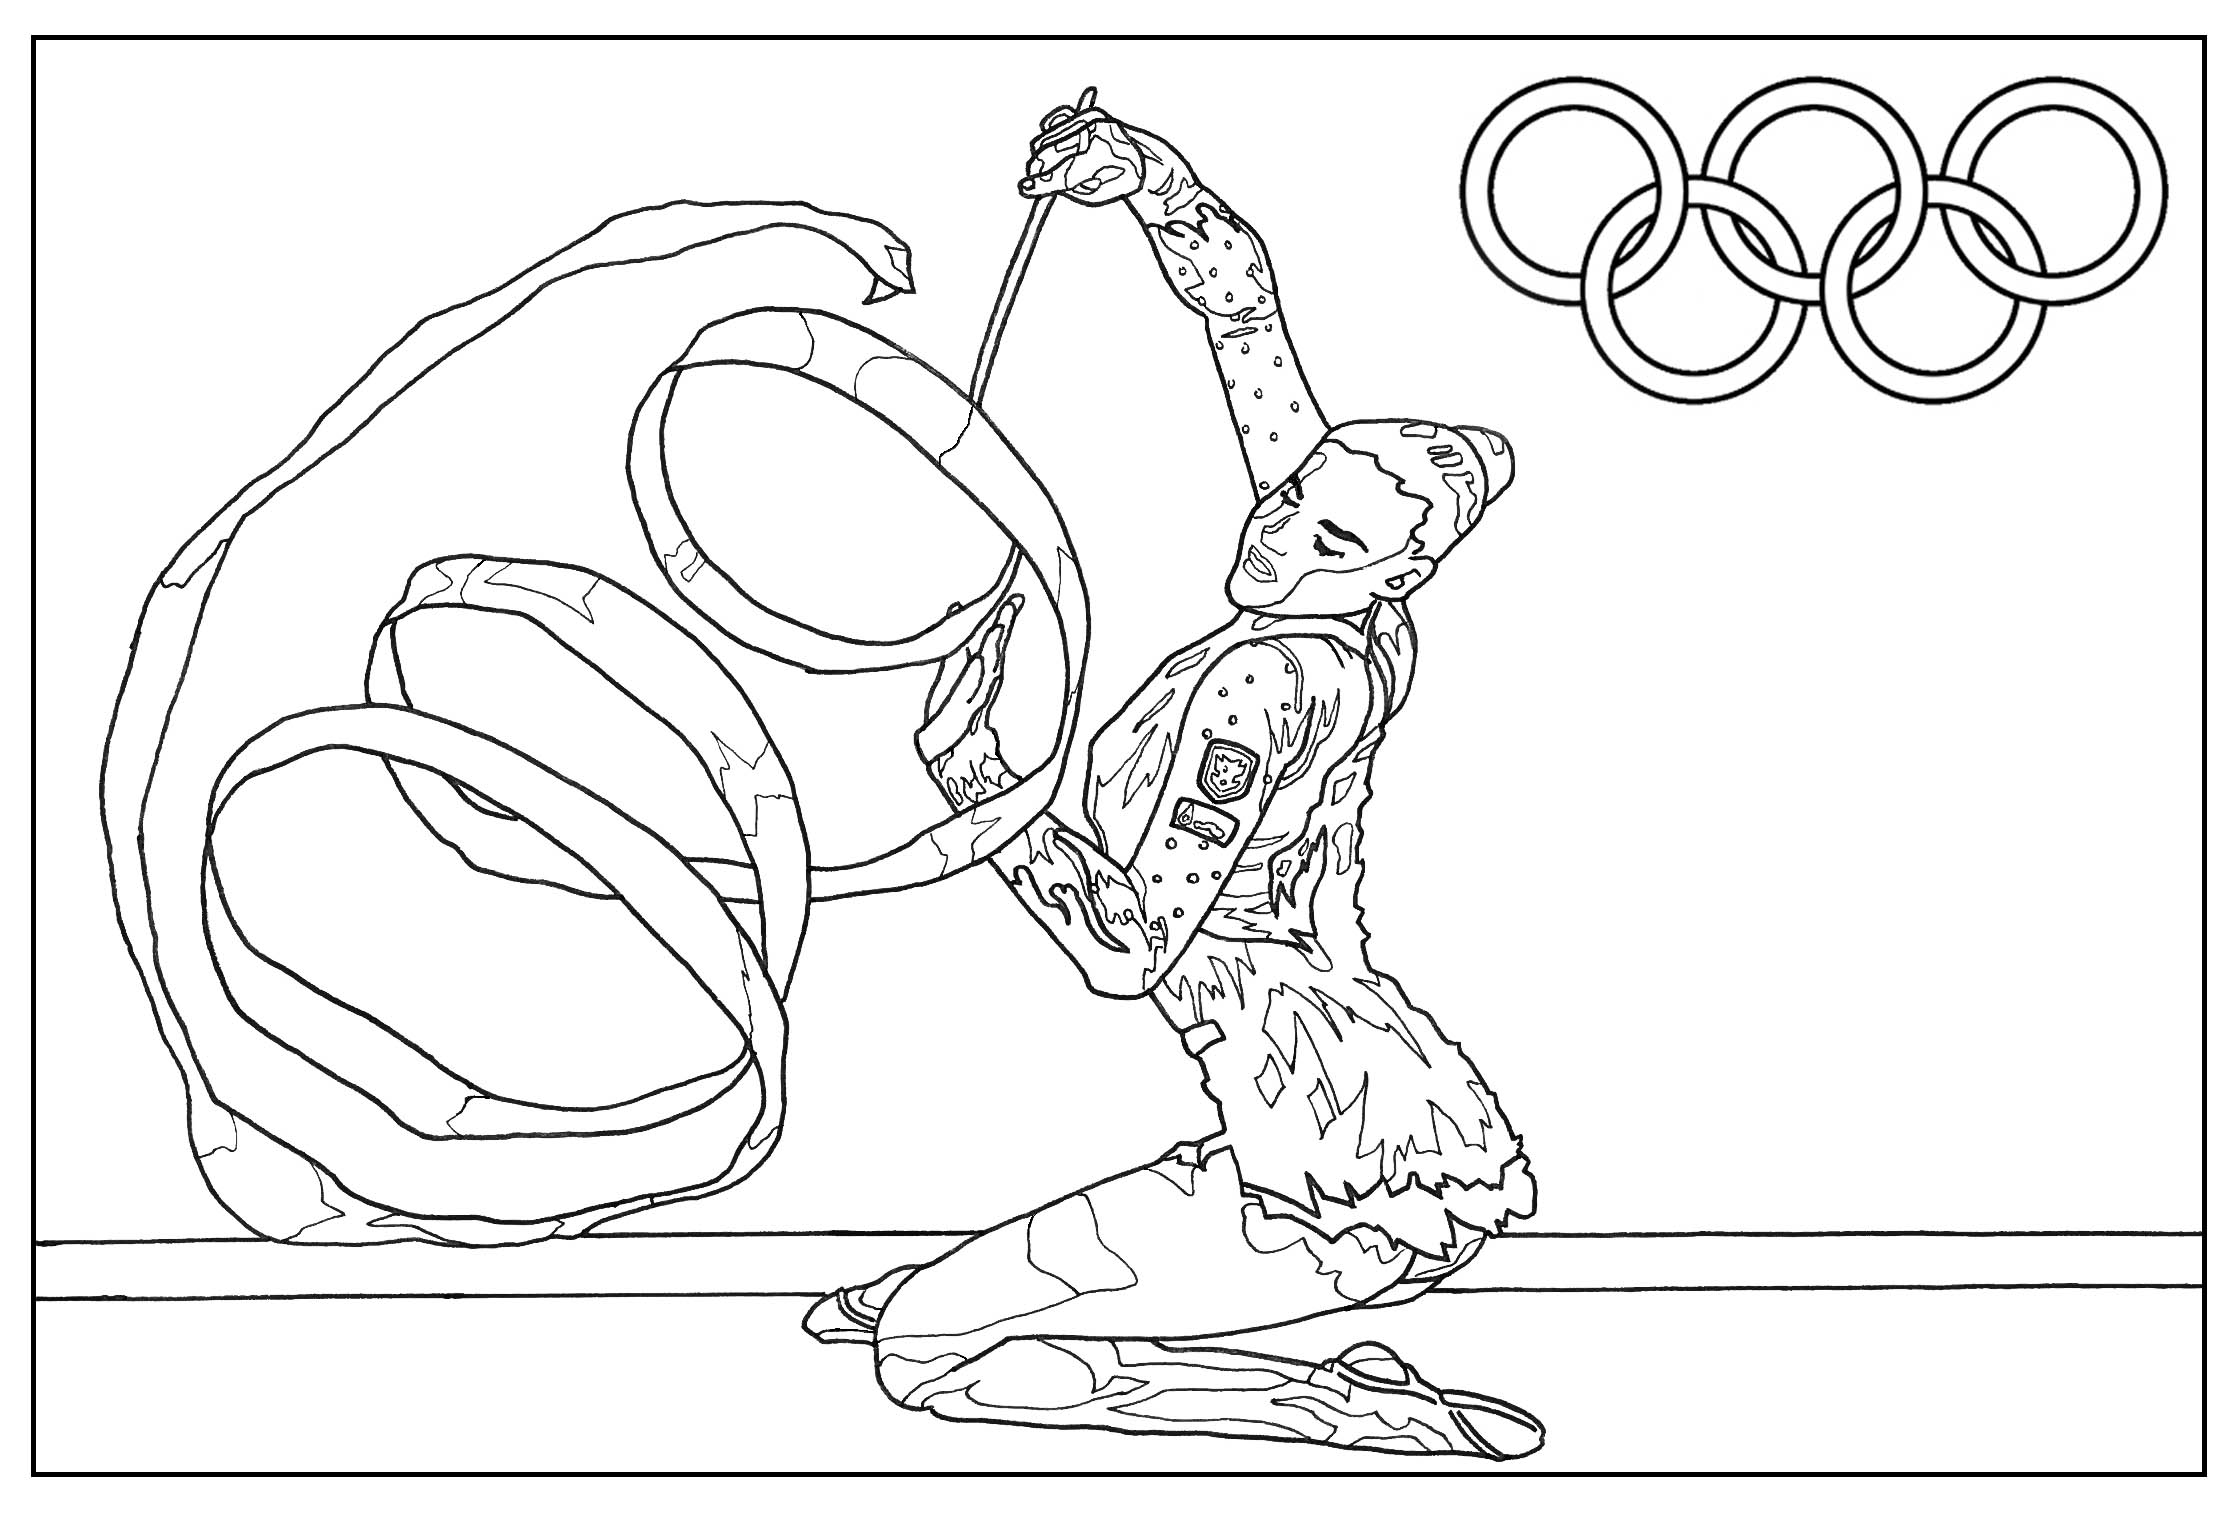 Olympic games : Gymnastic